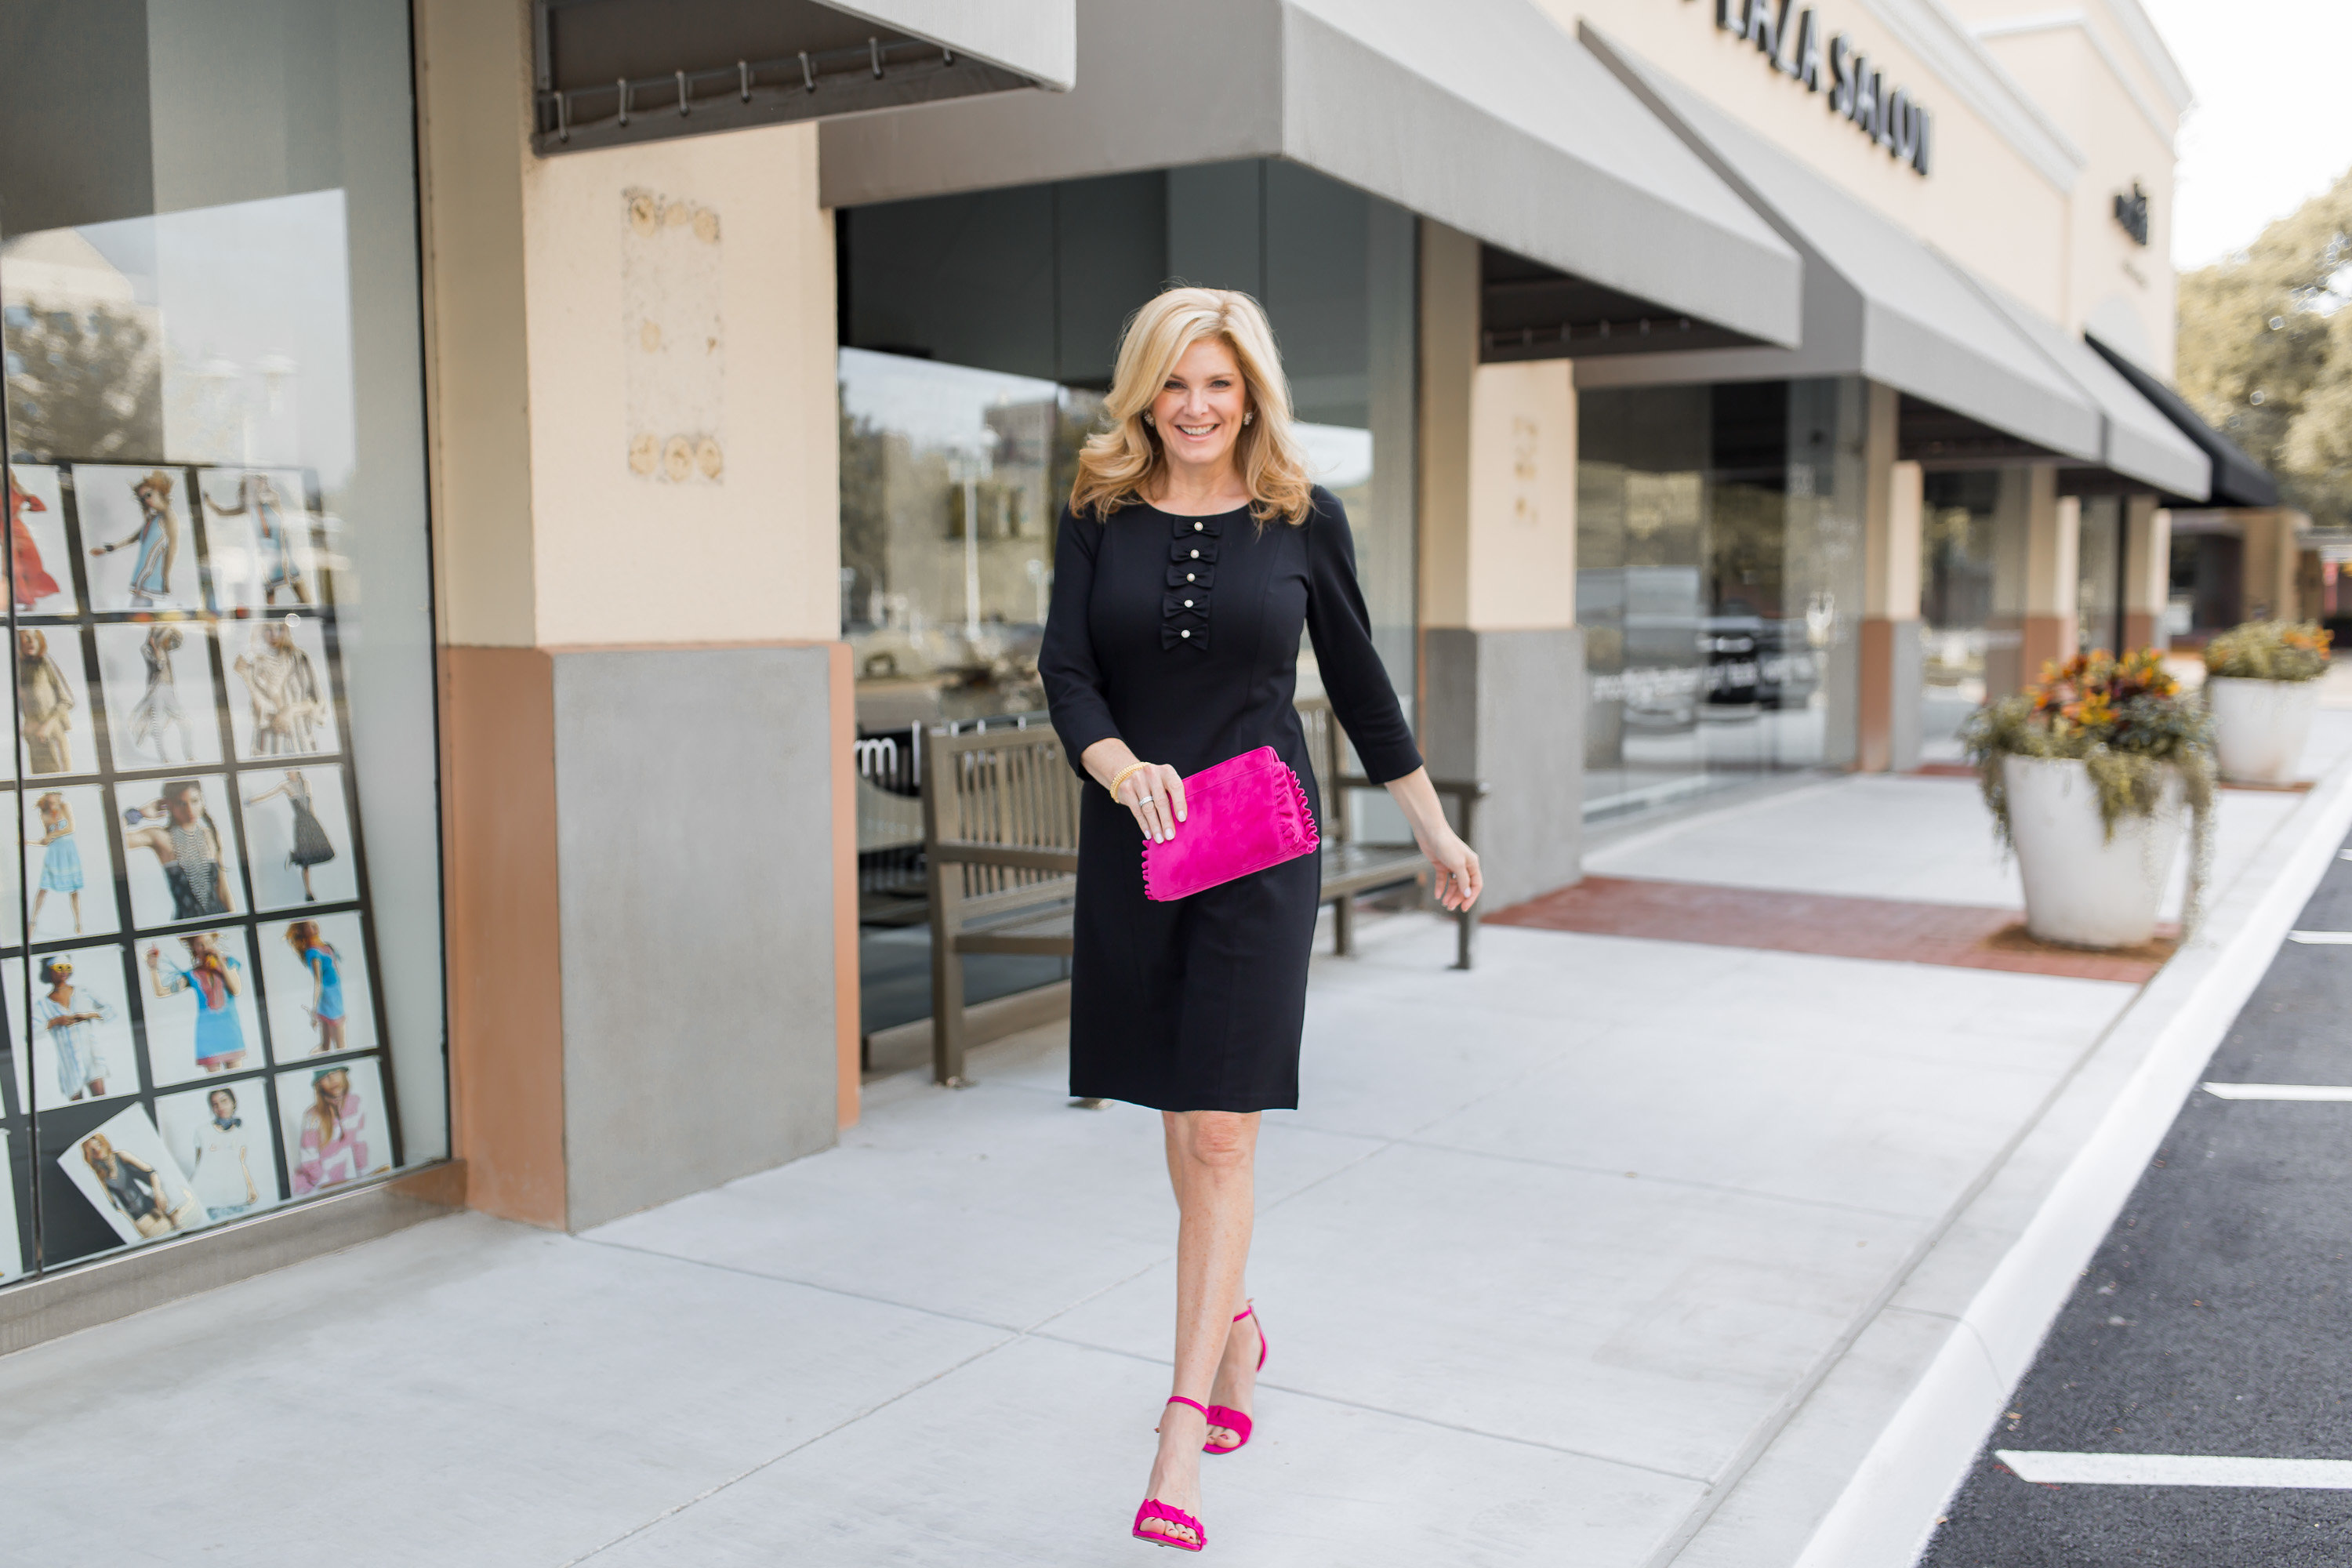 c64542bb06 Talbots is celebrating 70 years of Modern Classic Style | Tanya Foster |  Dallas Lifestyle & Fashion Blogger